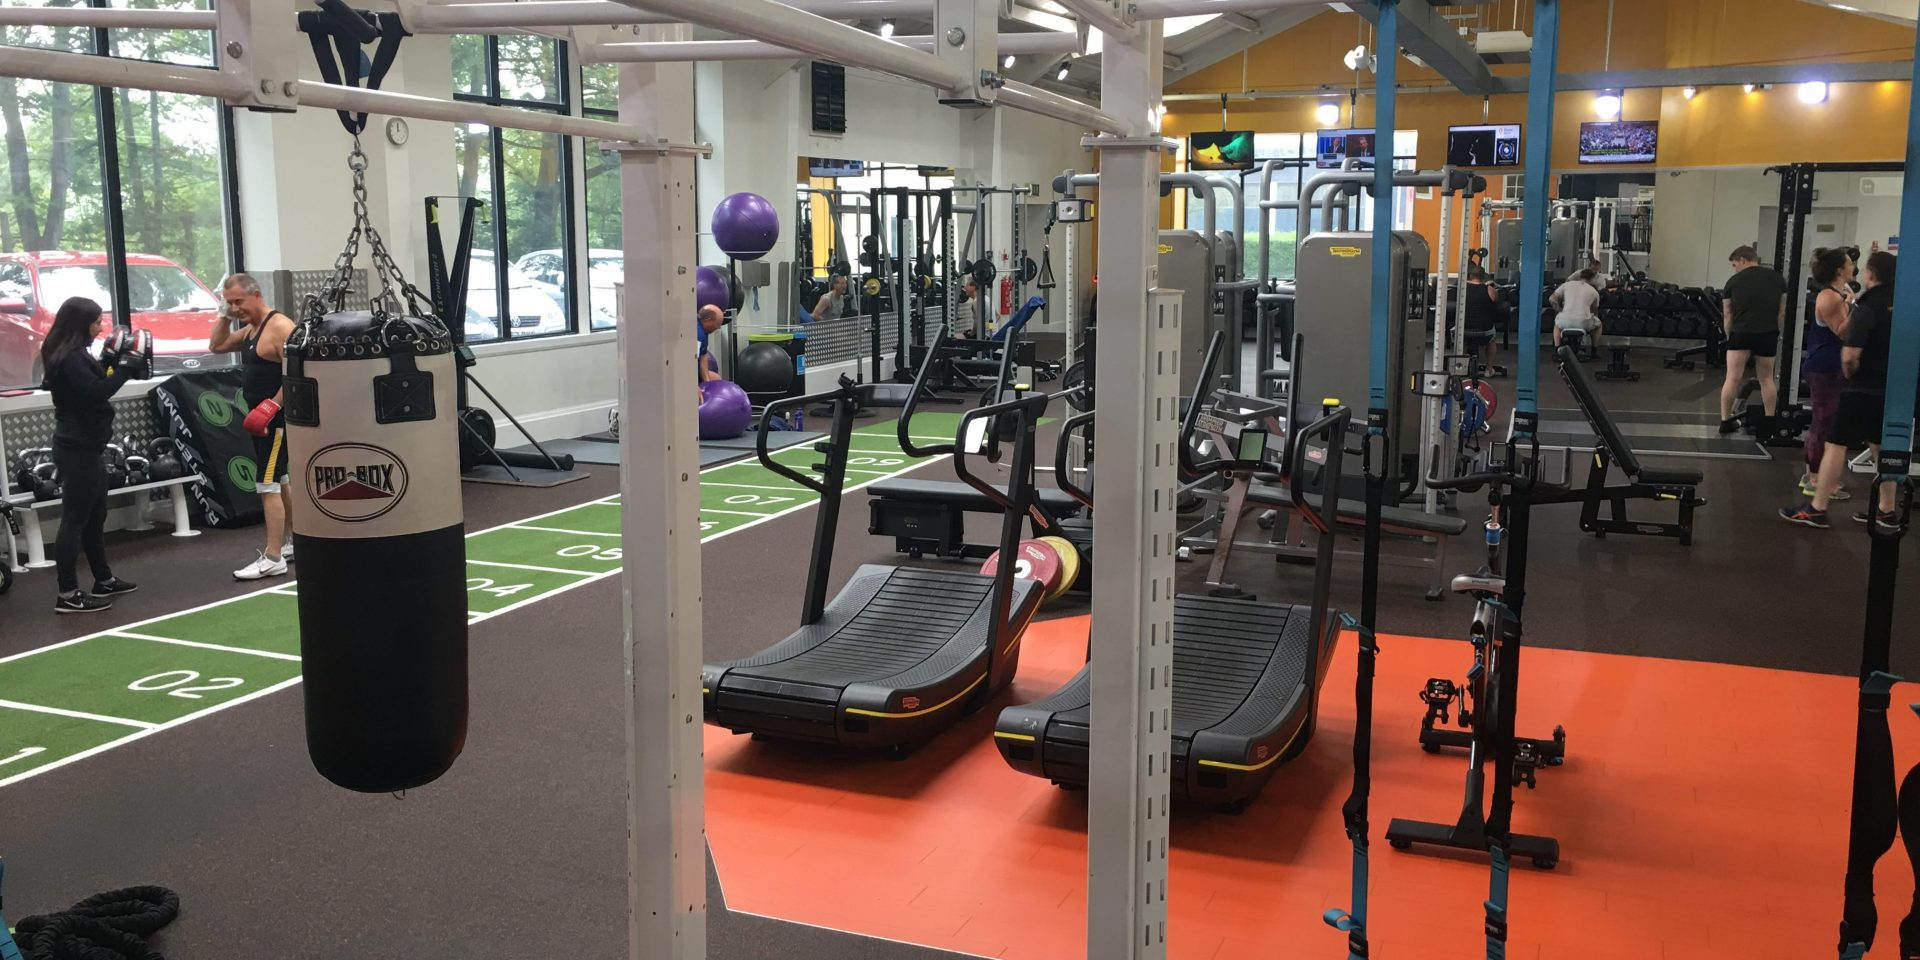 Places Gym Chesterfield - resistence